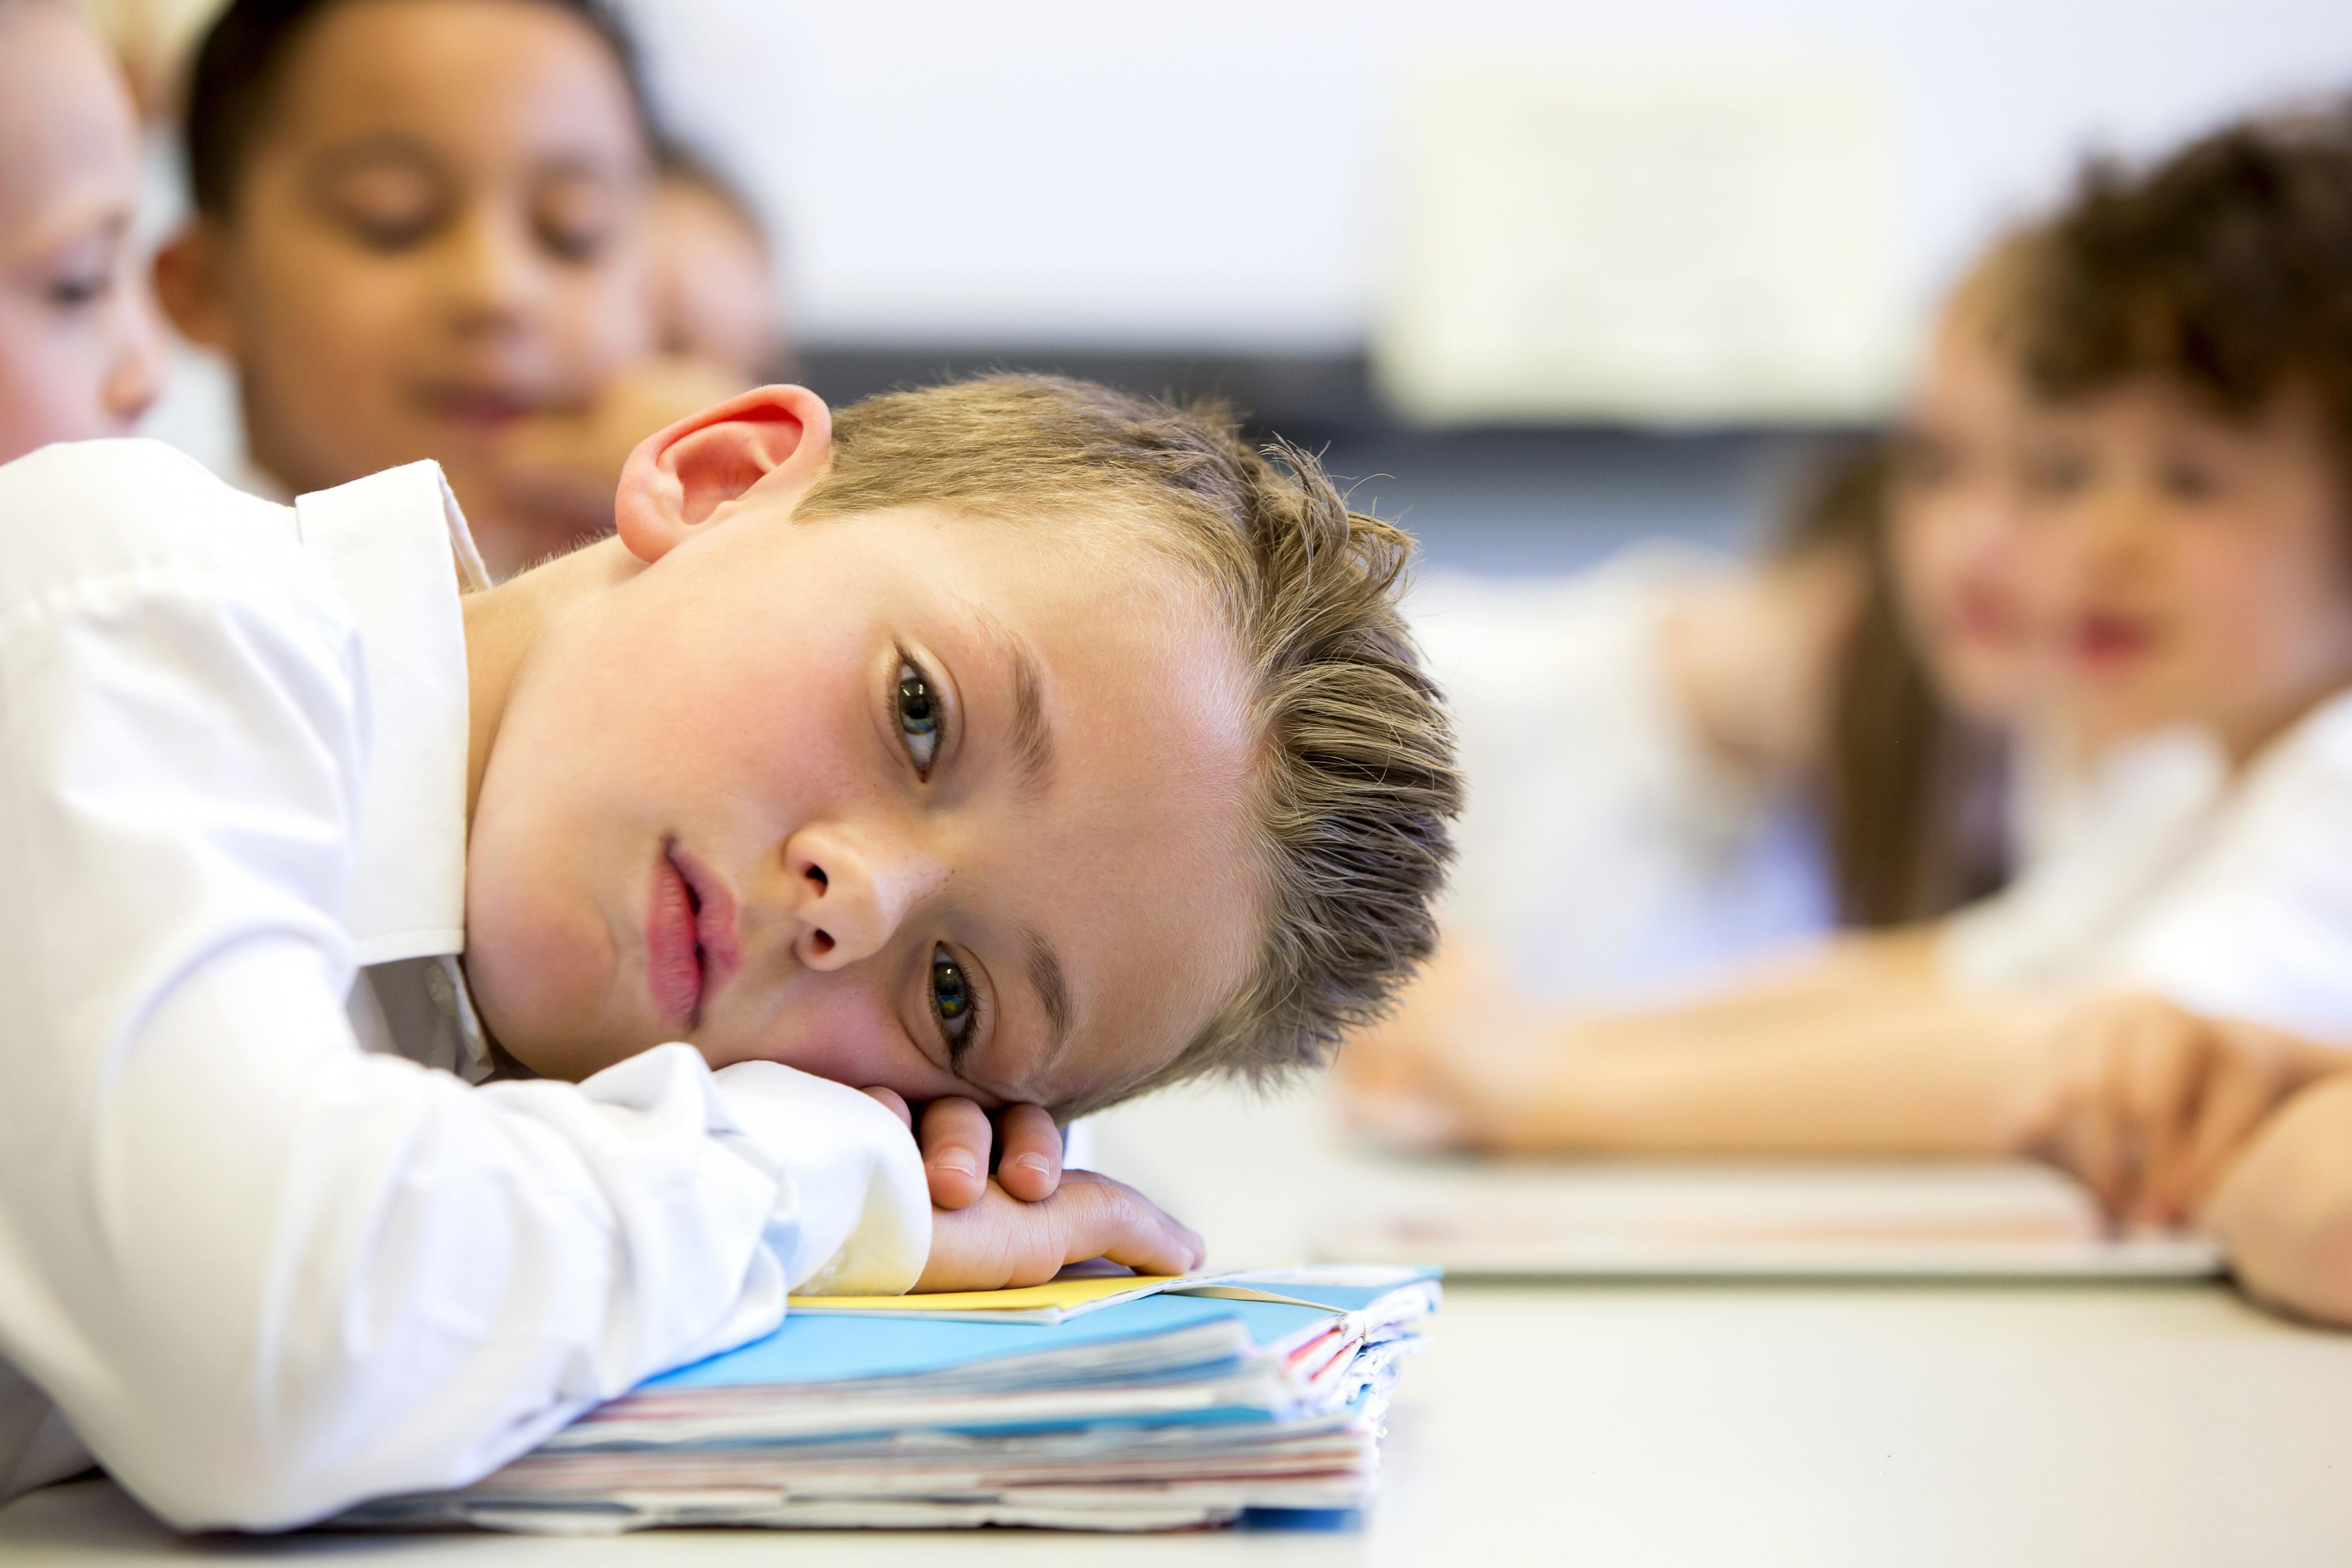 Signs Your Child is Struggling in School